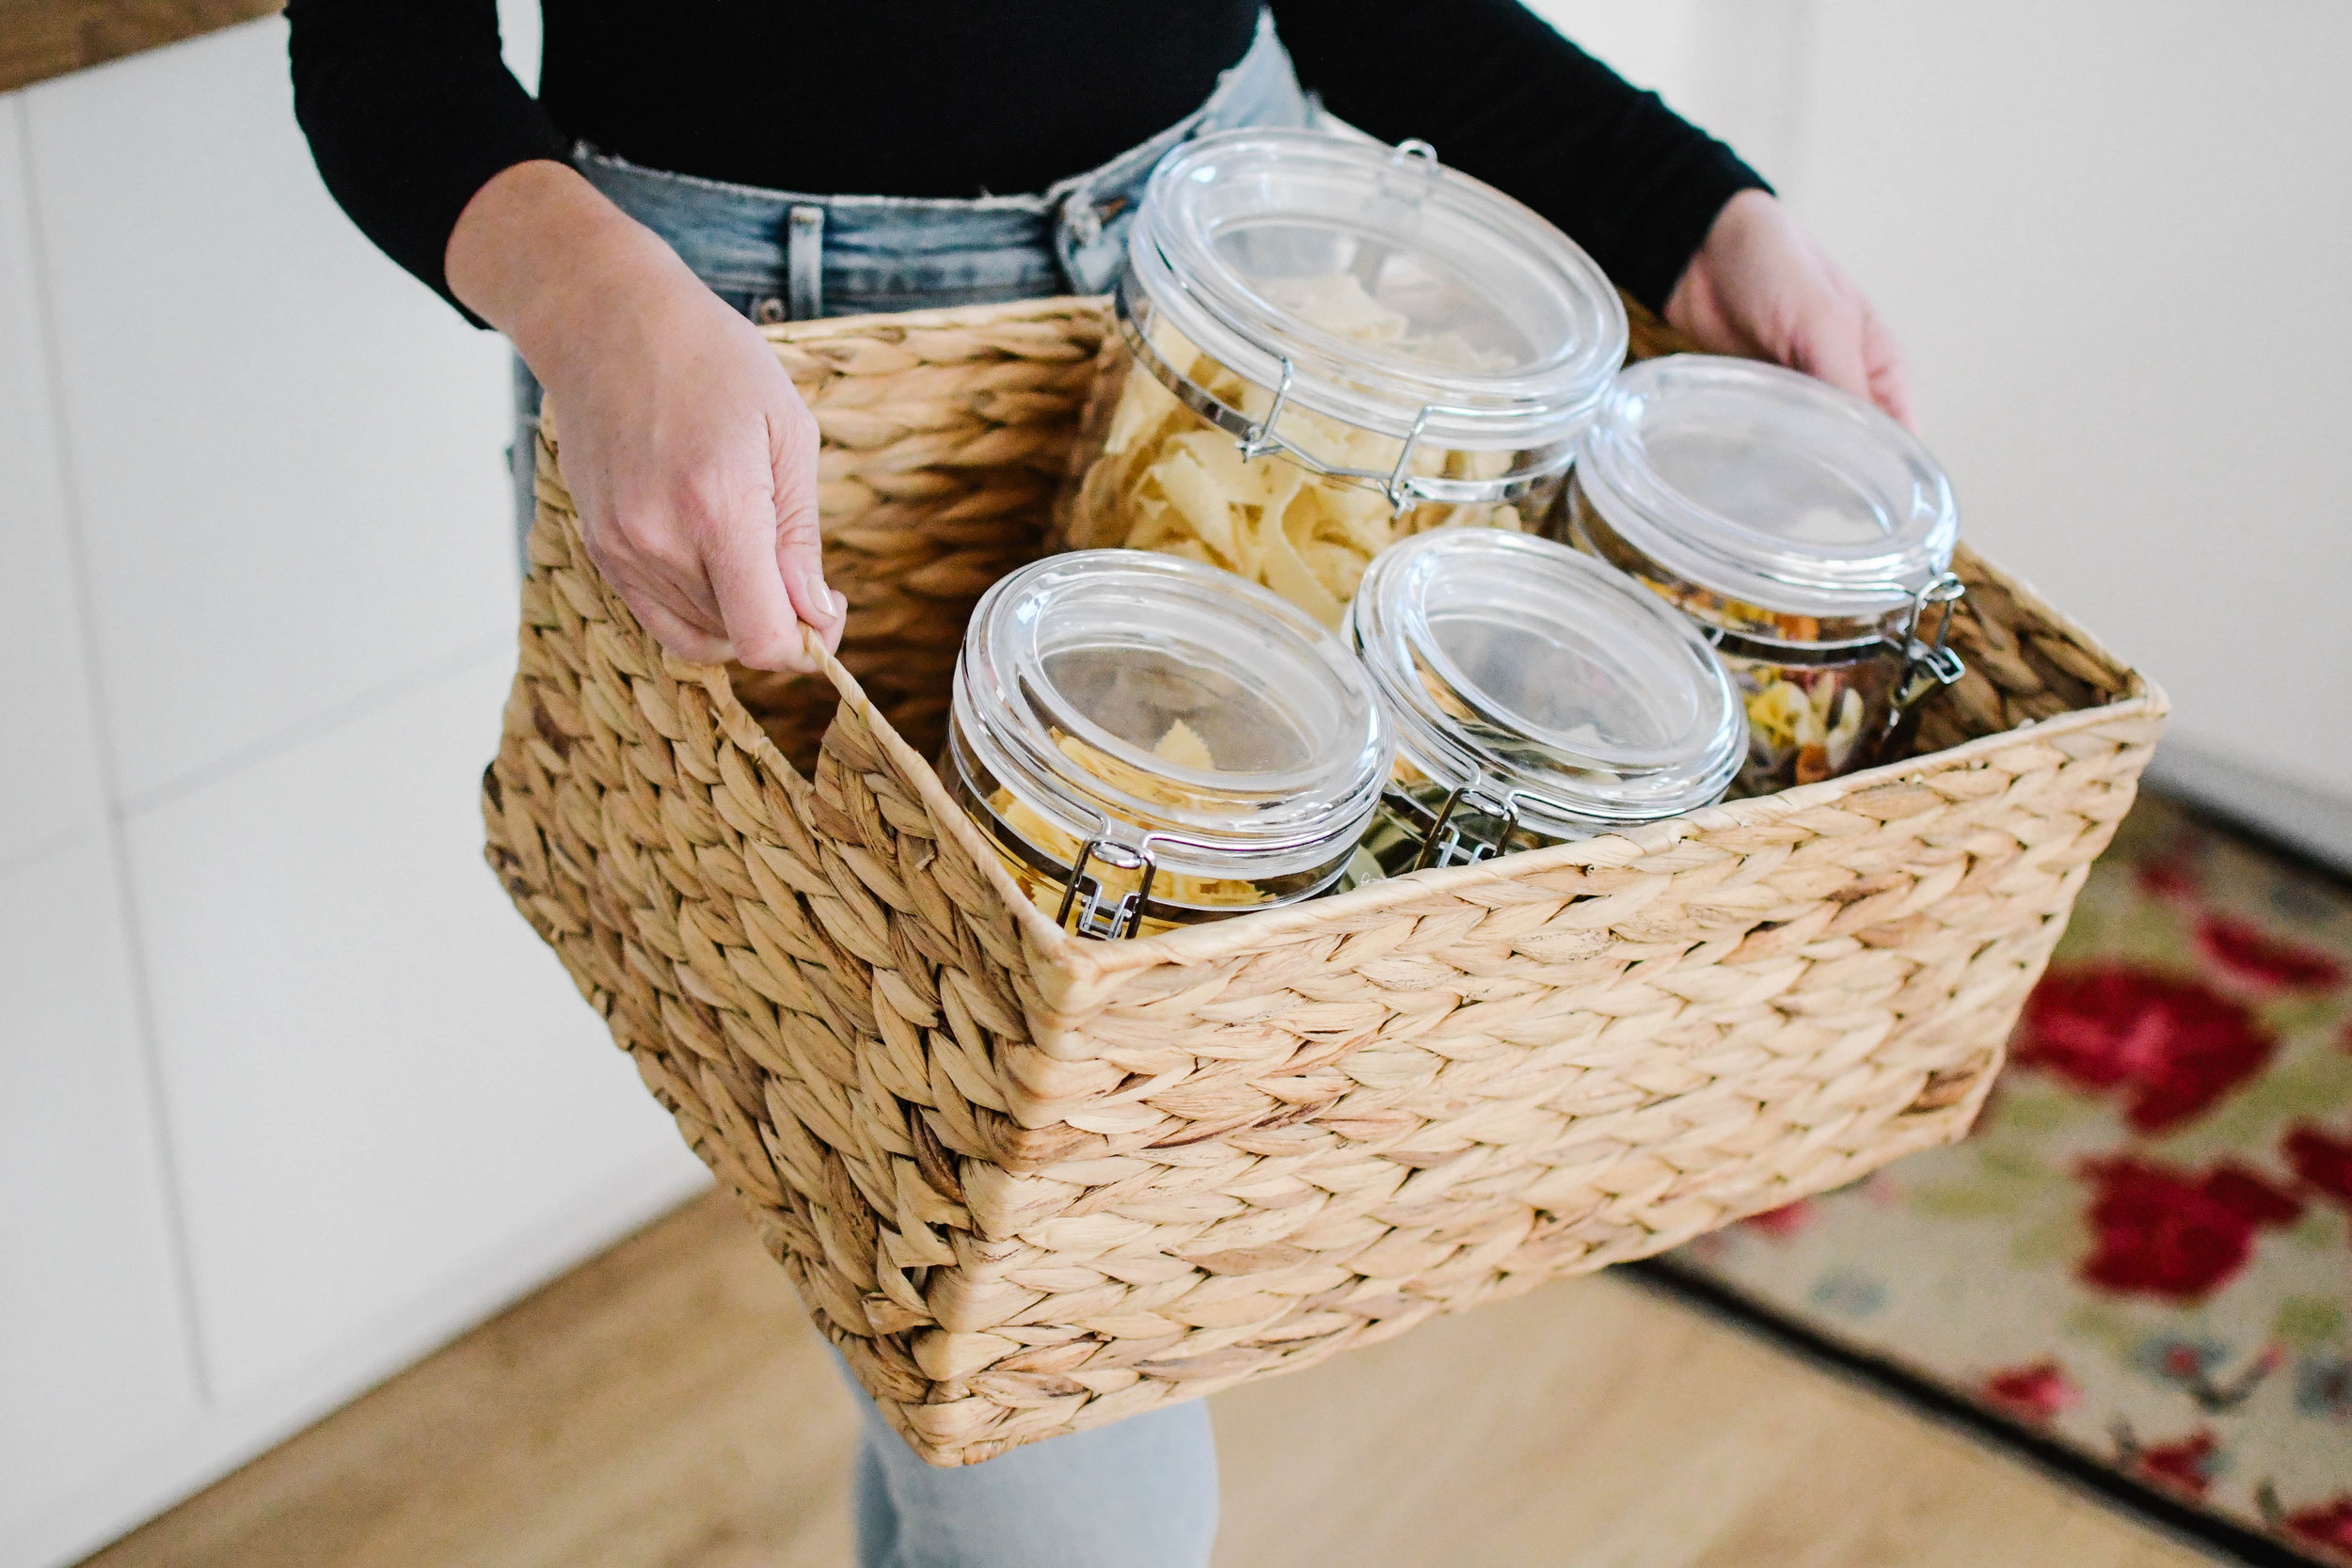 10 Home Organizing Tips to Simplify Your Life